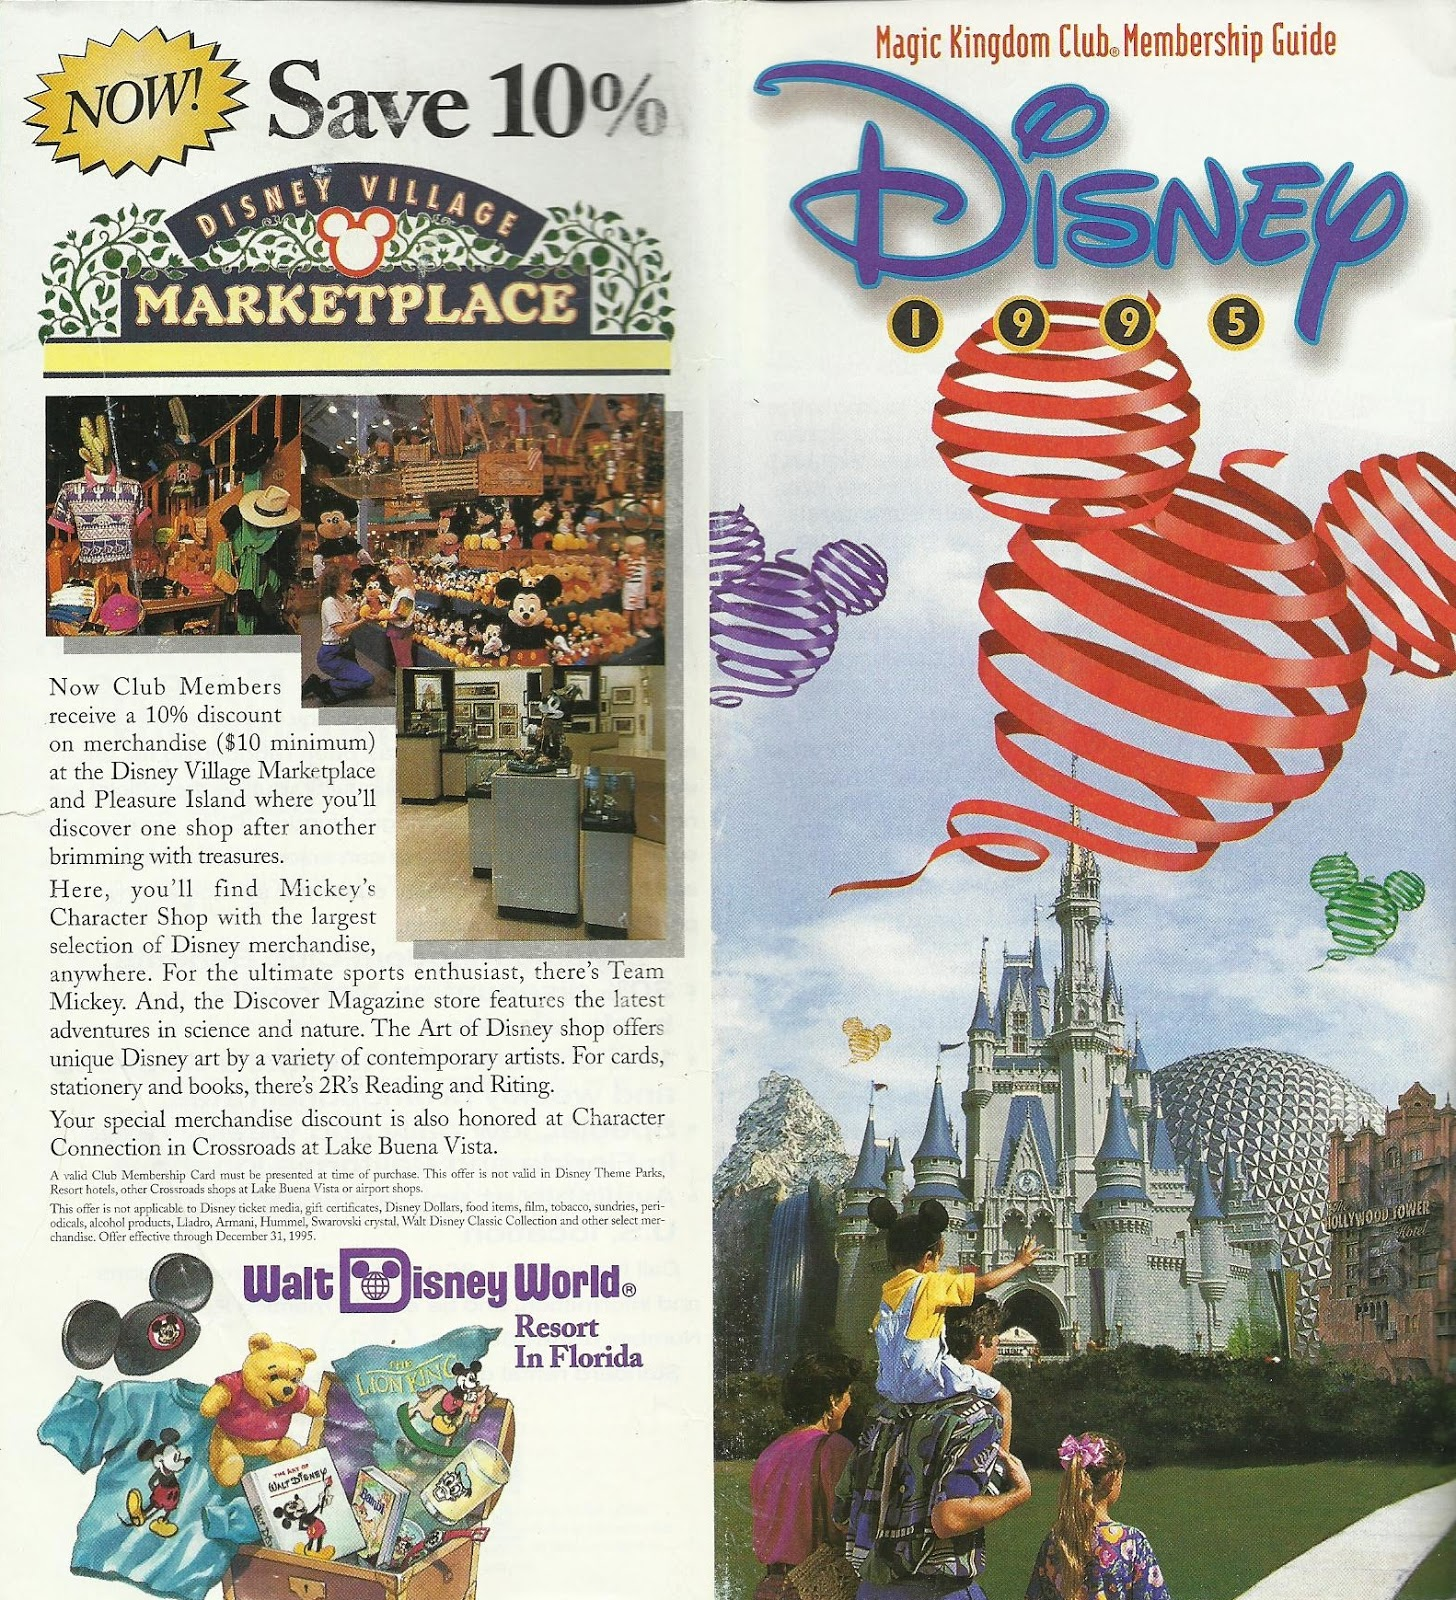 Disney Vacation Kingdom 1995 Magic Kingdom Club